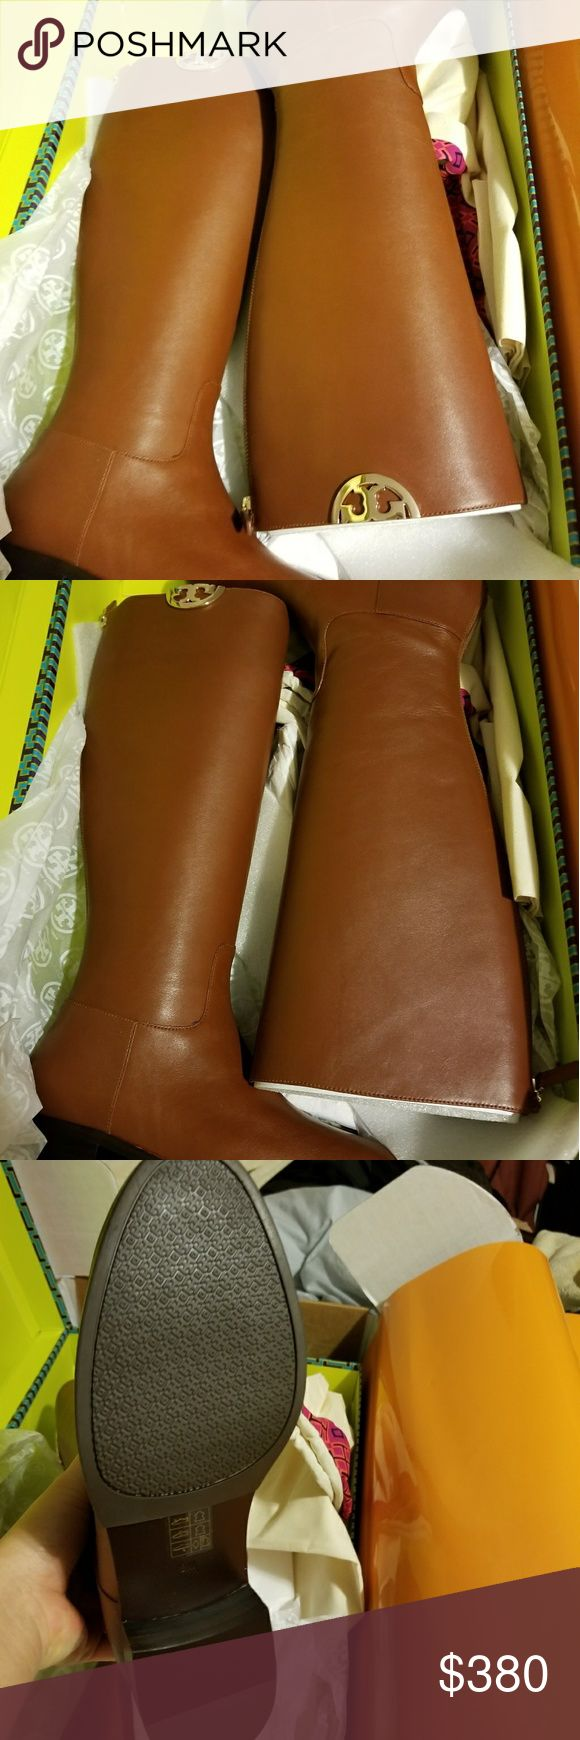 Tory Burch Sidney leather boots size 8 Brand new with tag Tory Burch Shoes Over the Knee Boots